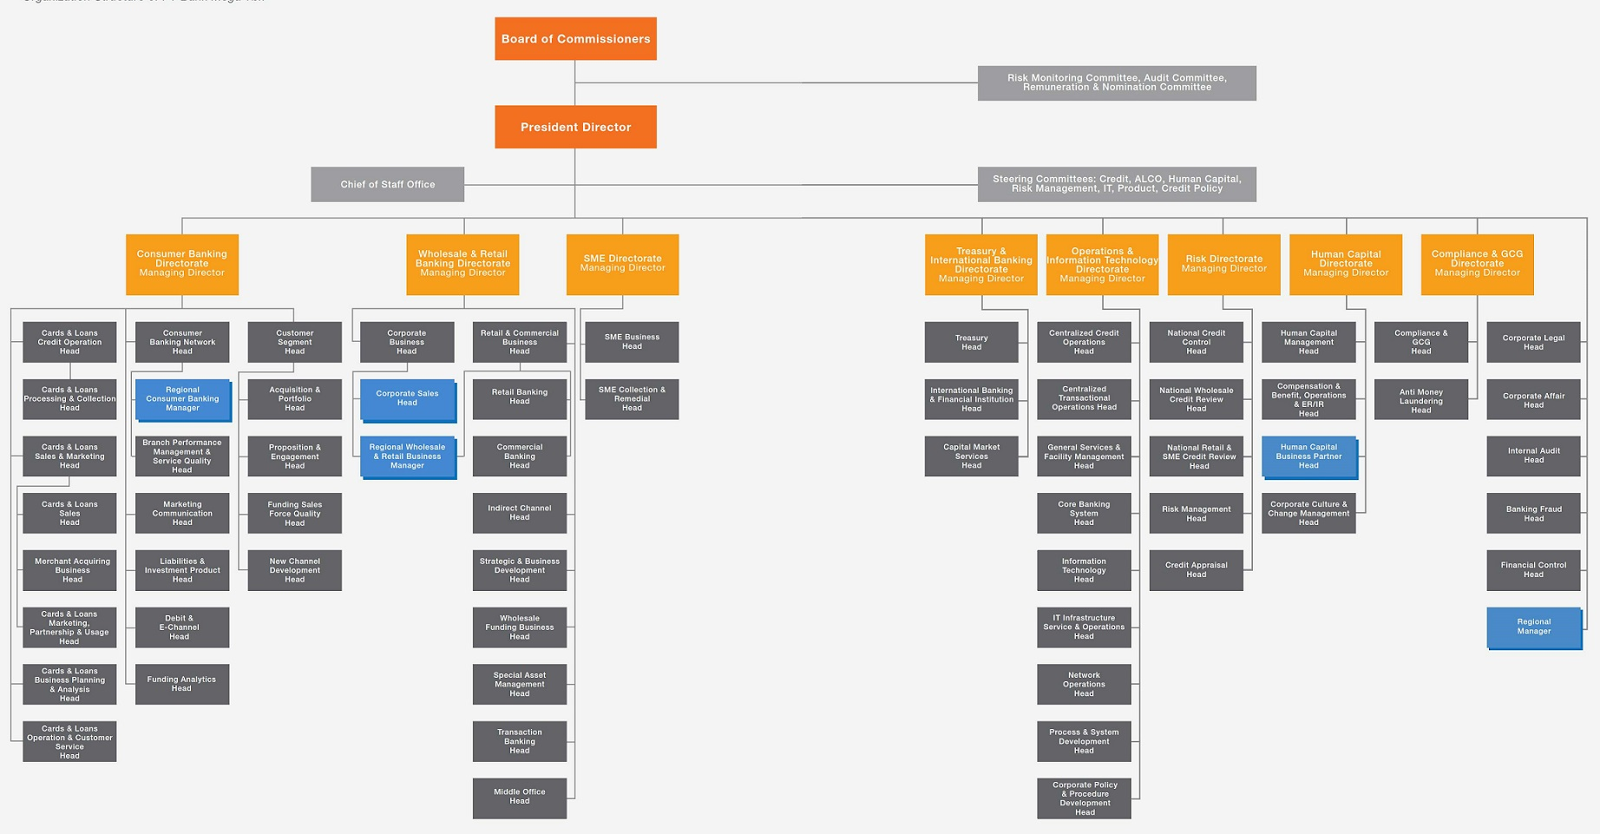 organisational structure of allied bank limited